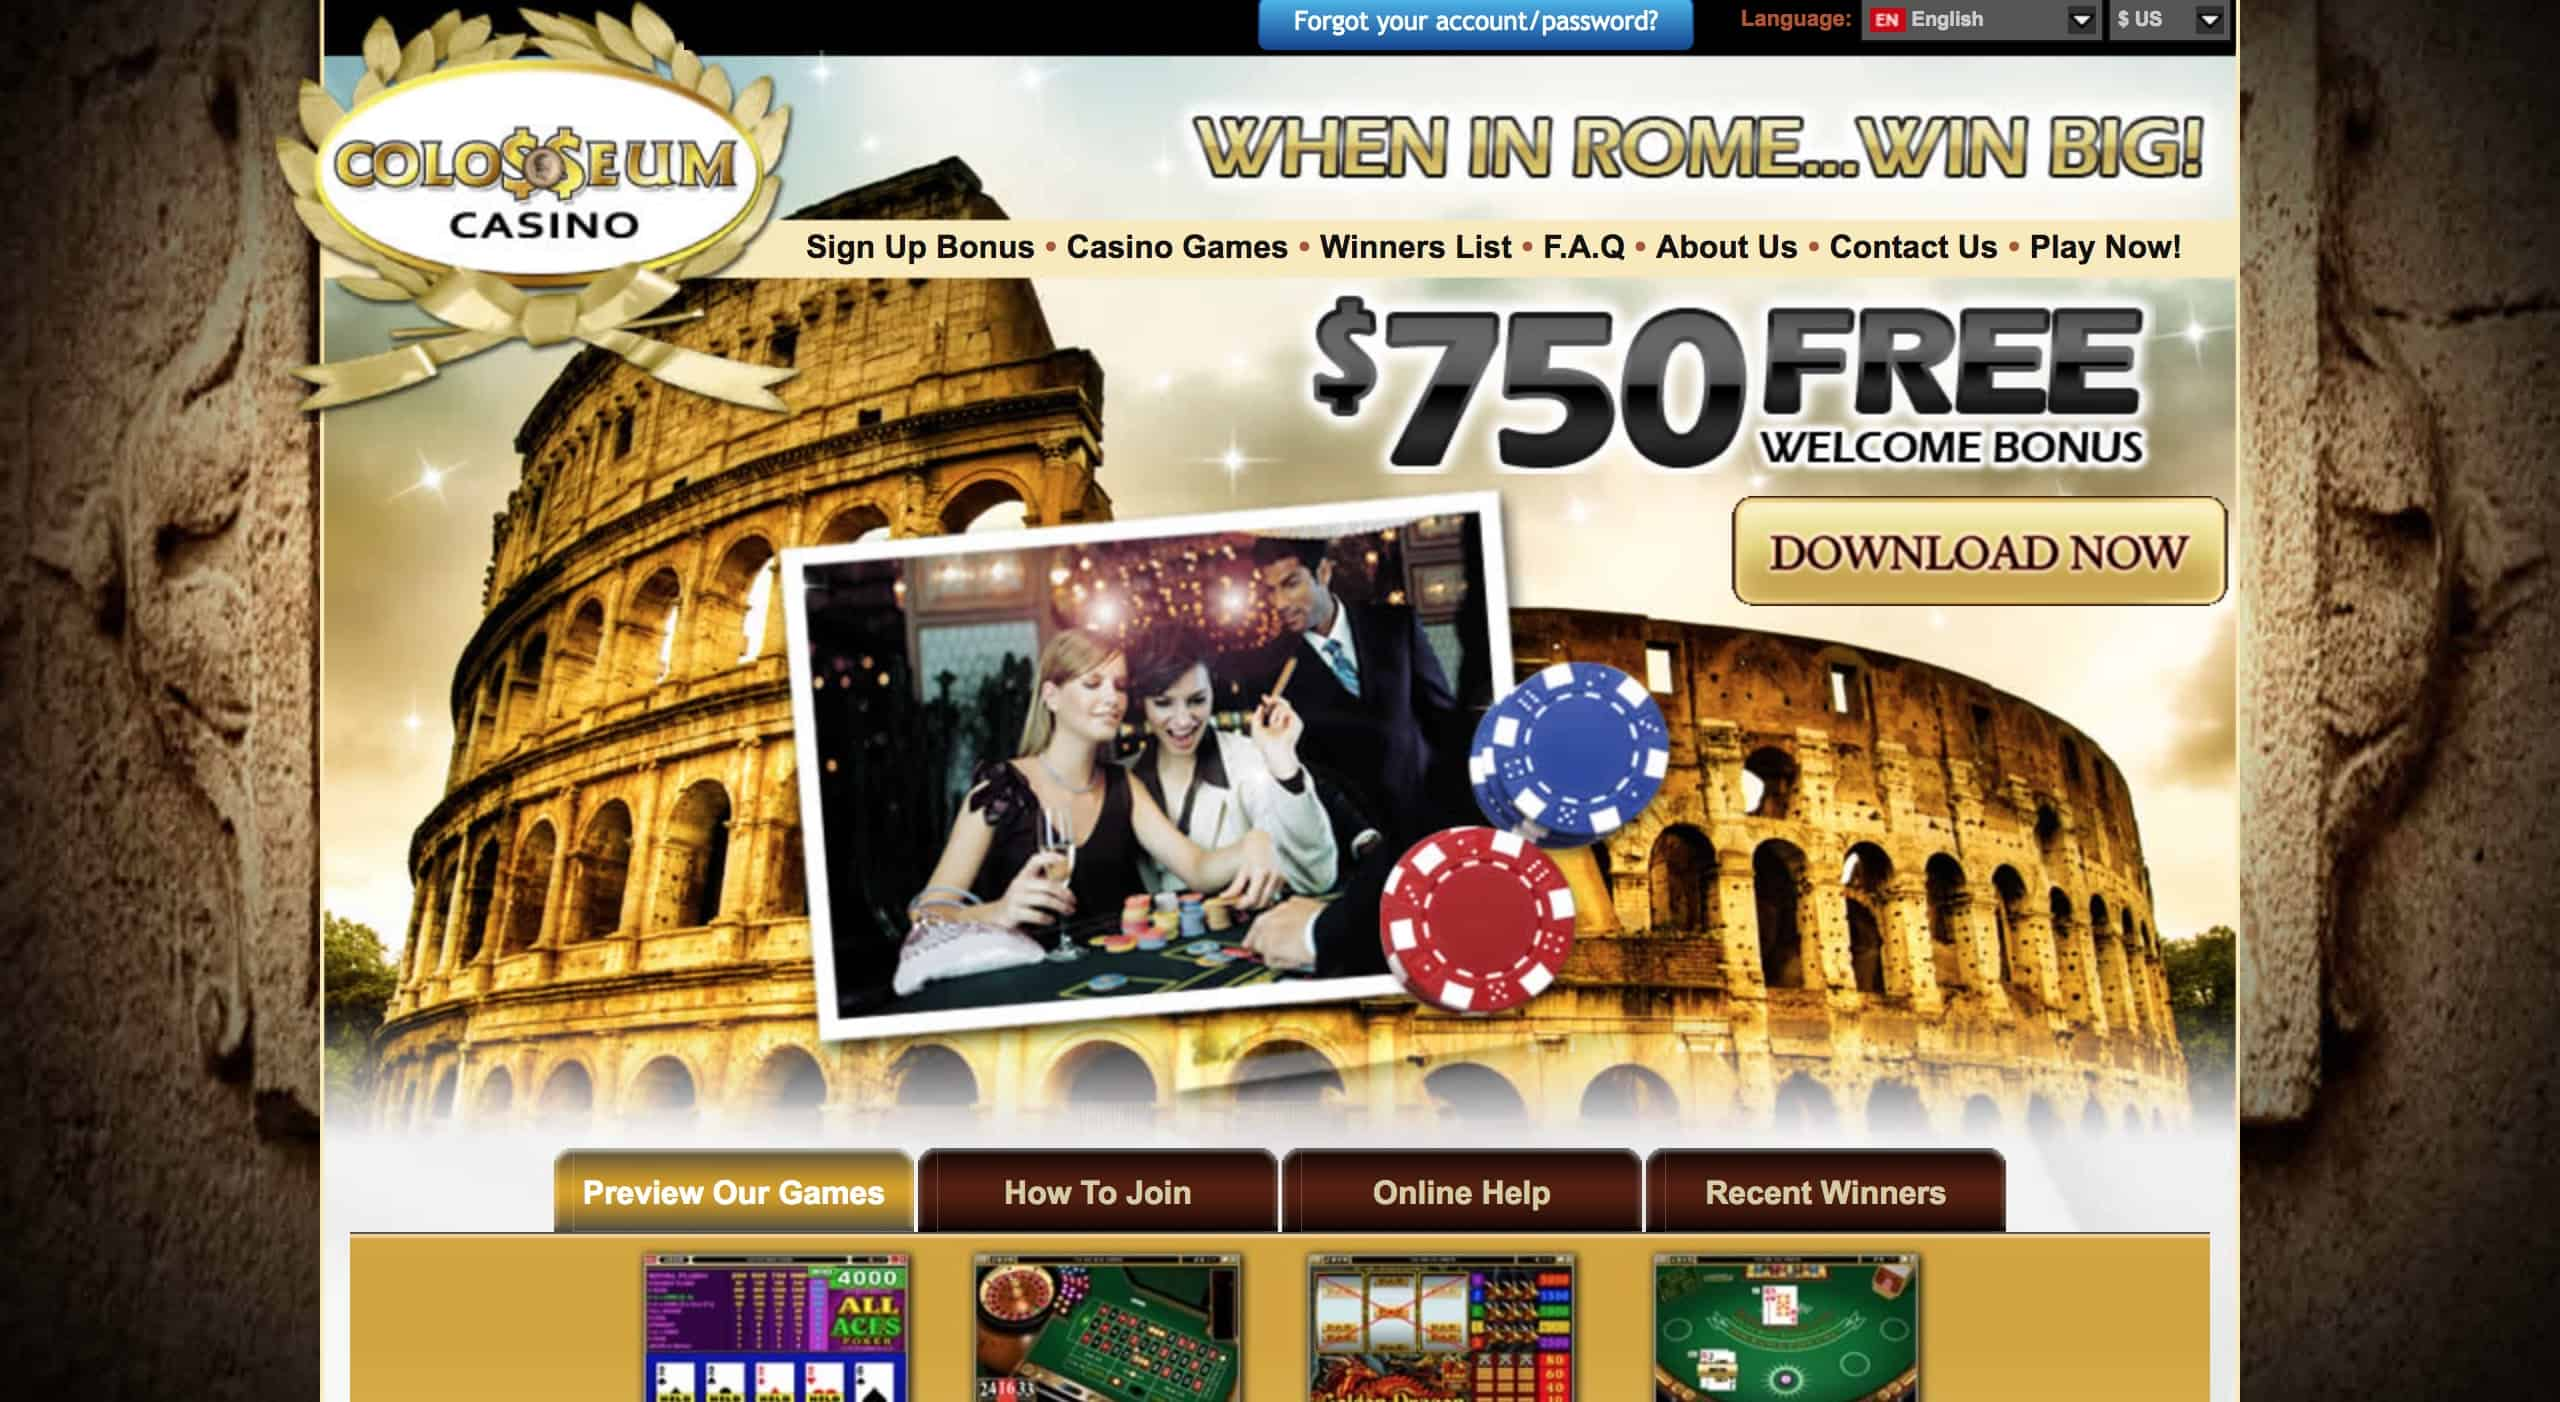 Colosseum Casino review: what dpes Microgaming mean?